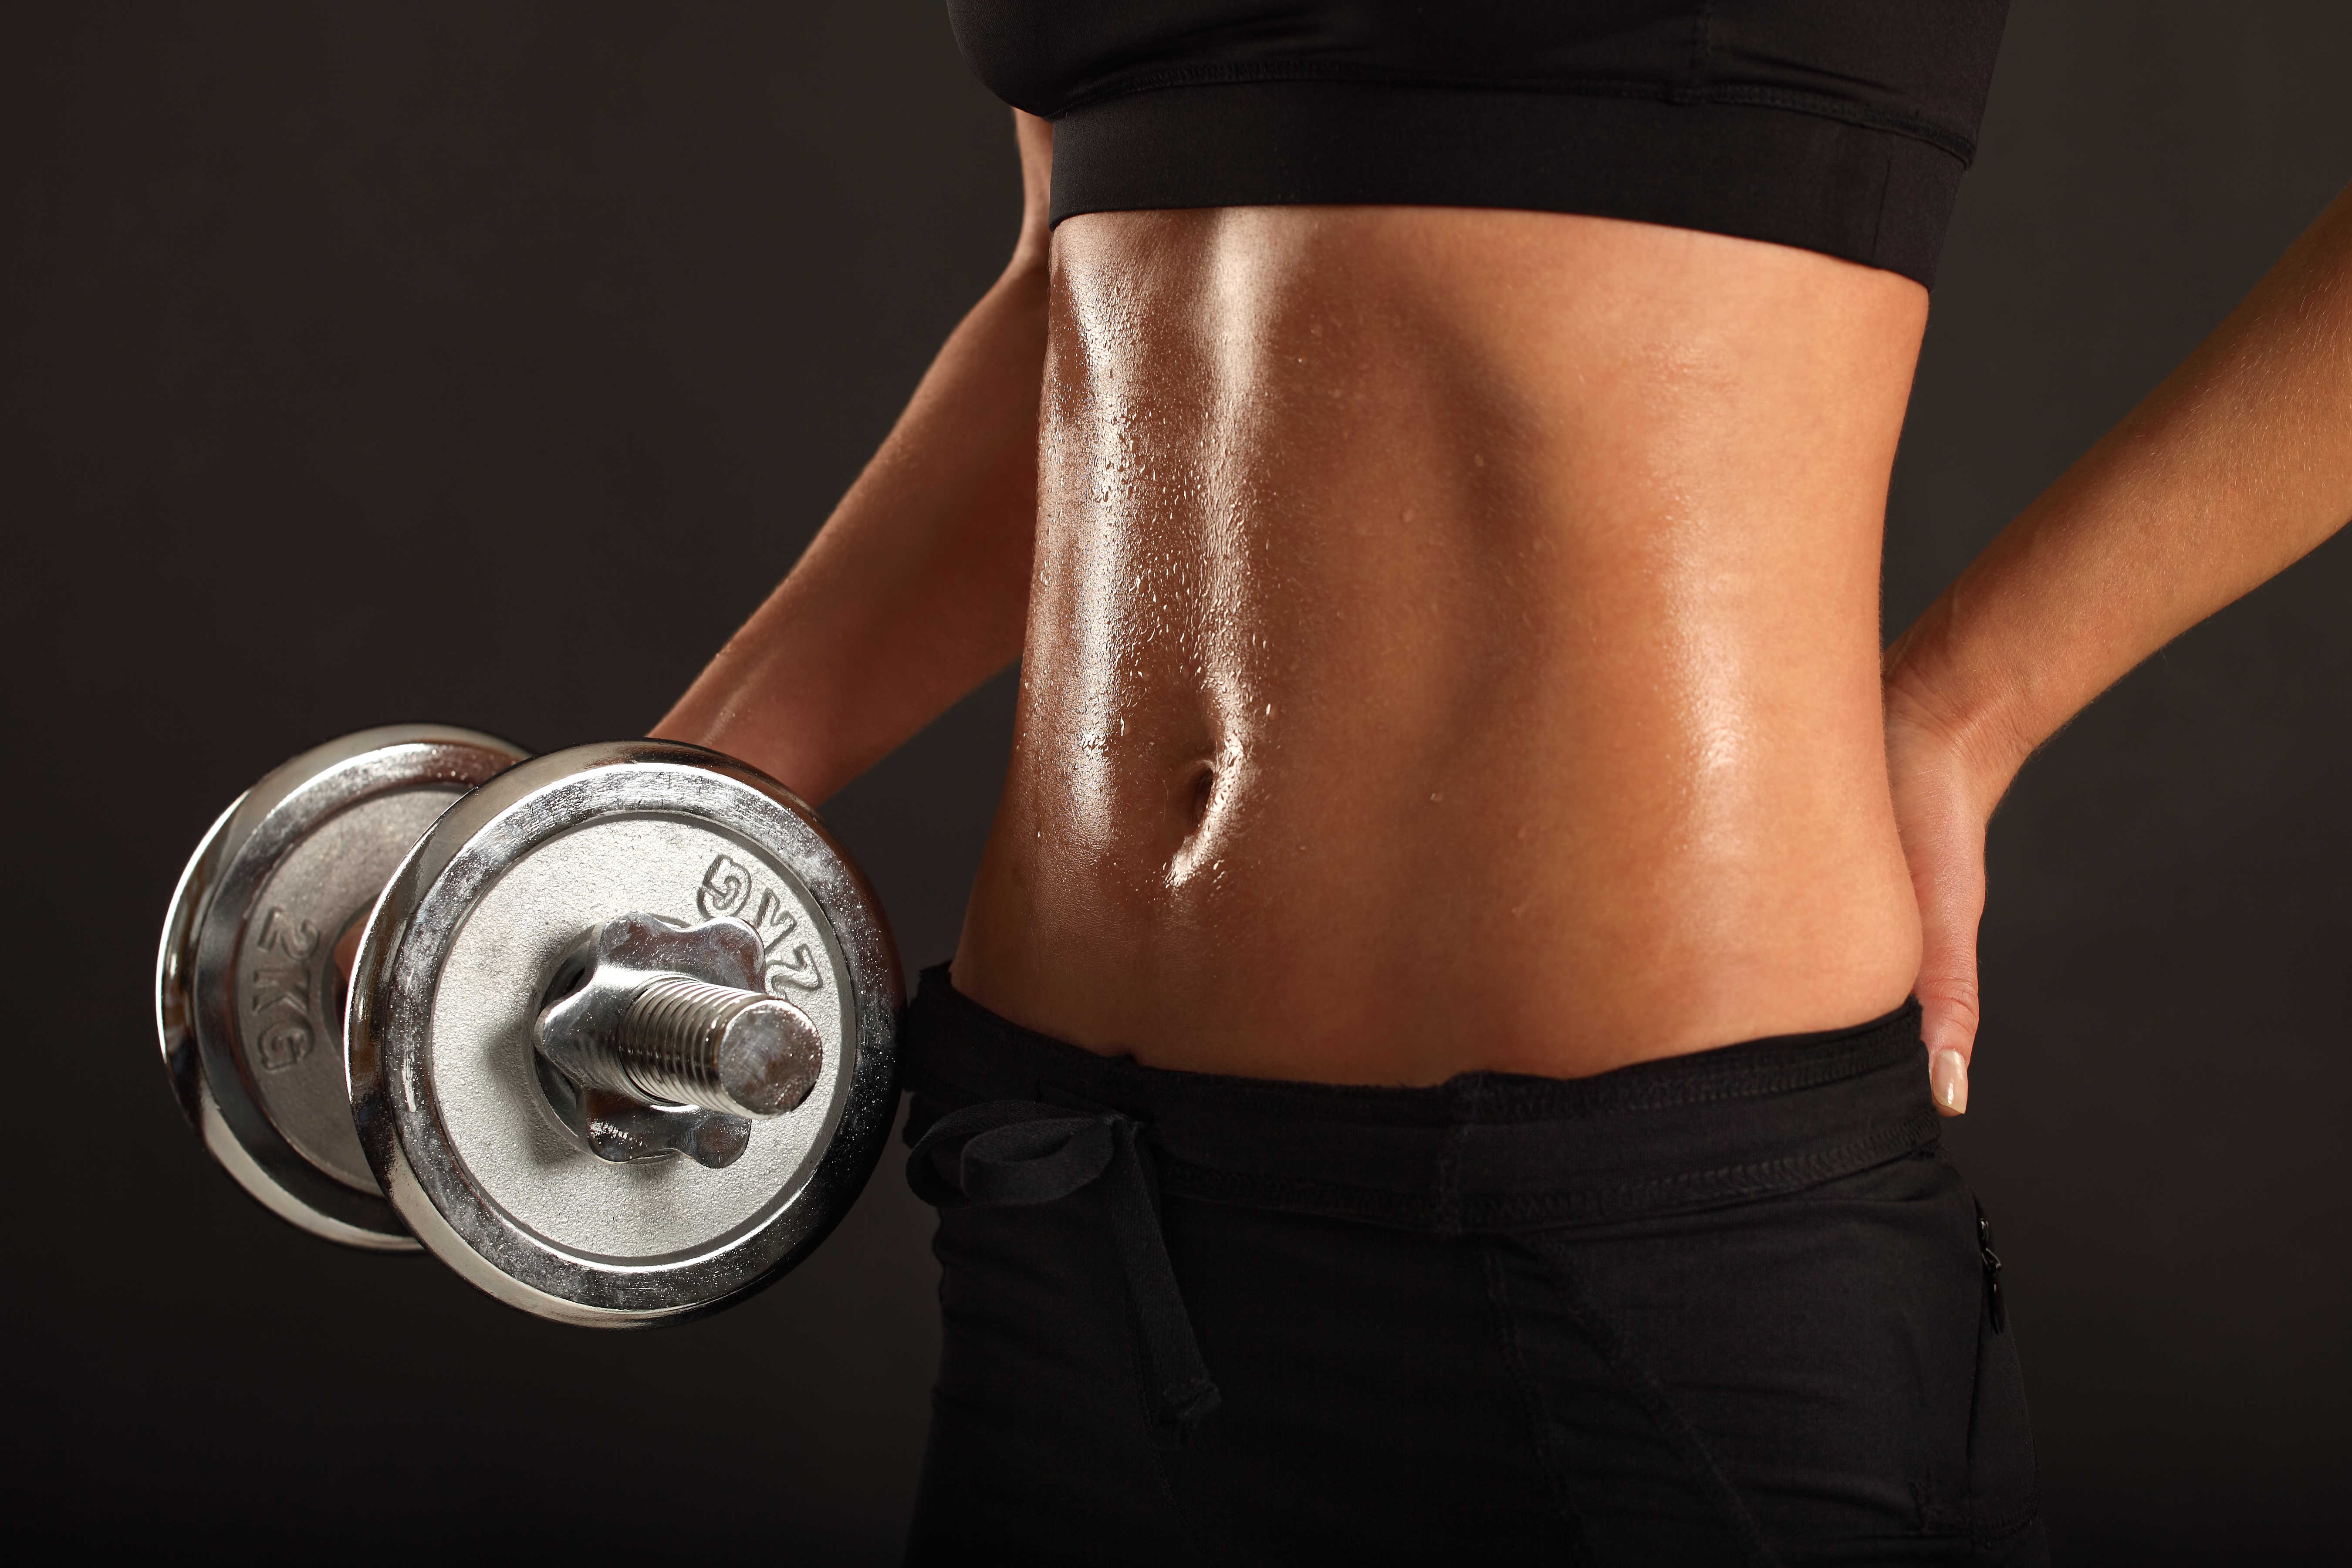 Why weight isn't a good indicator of health